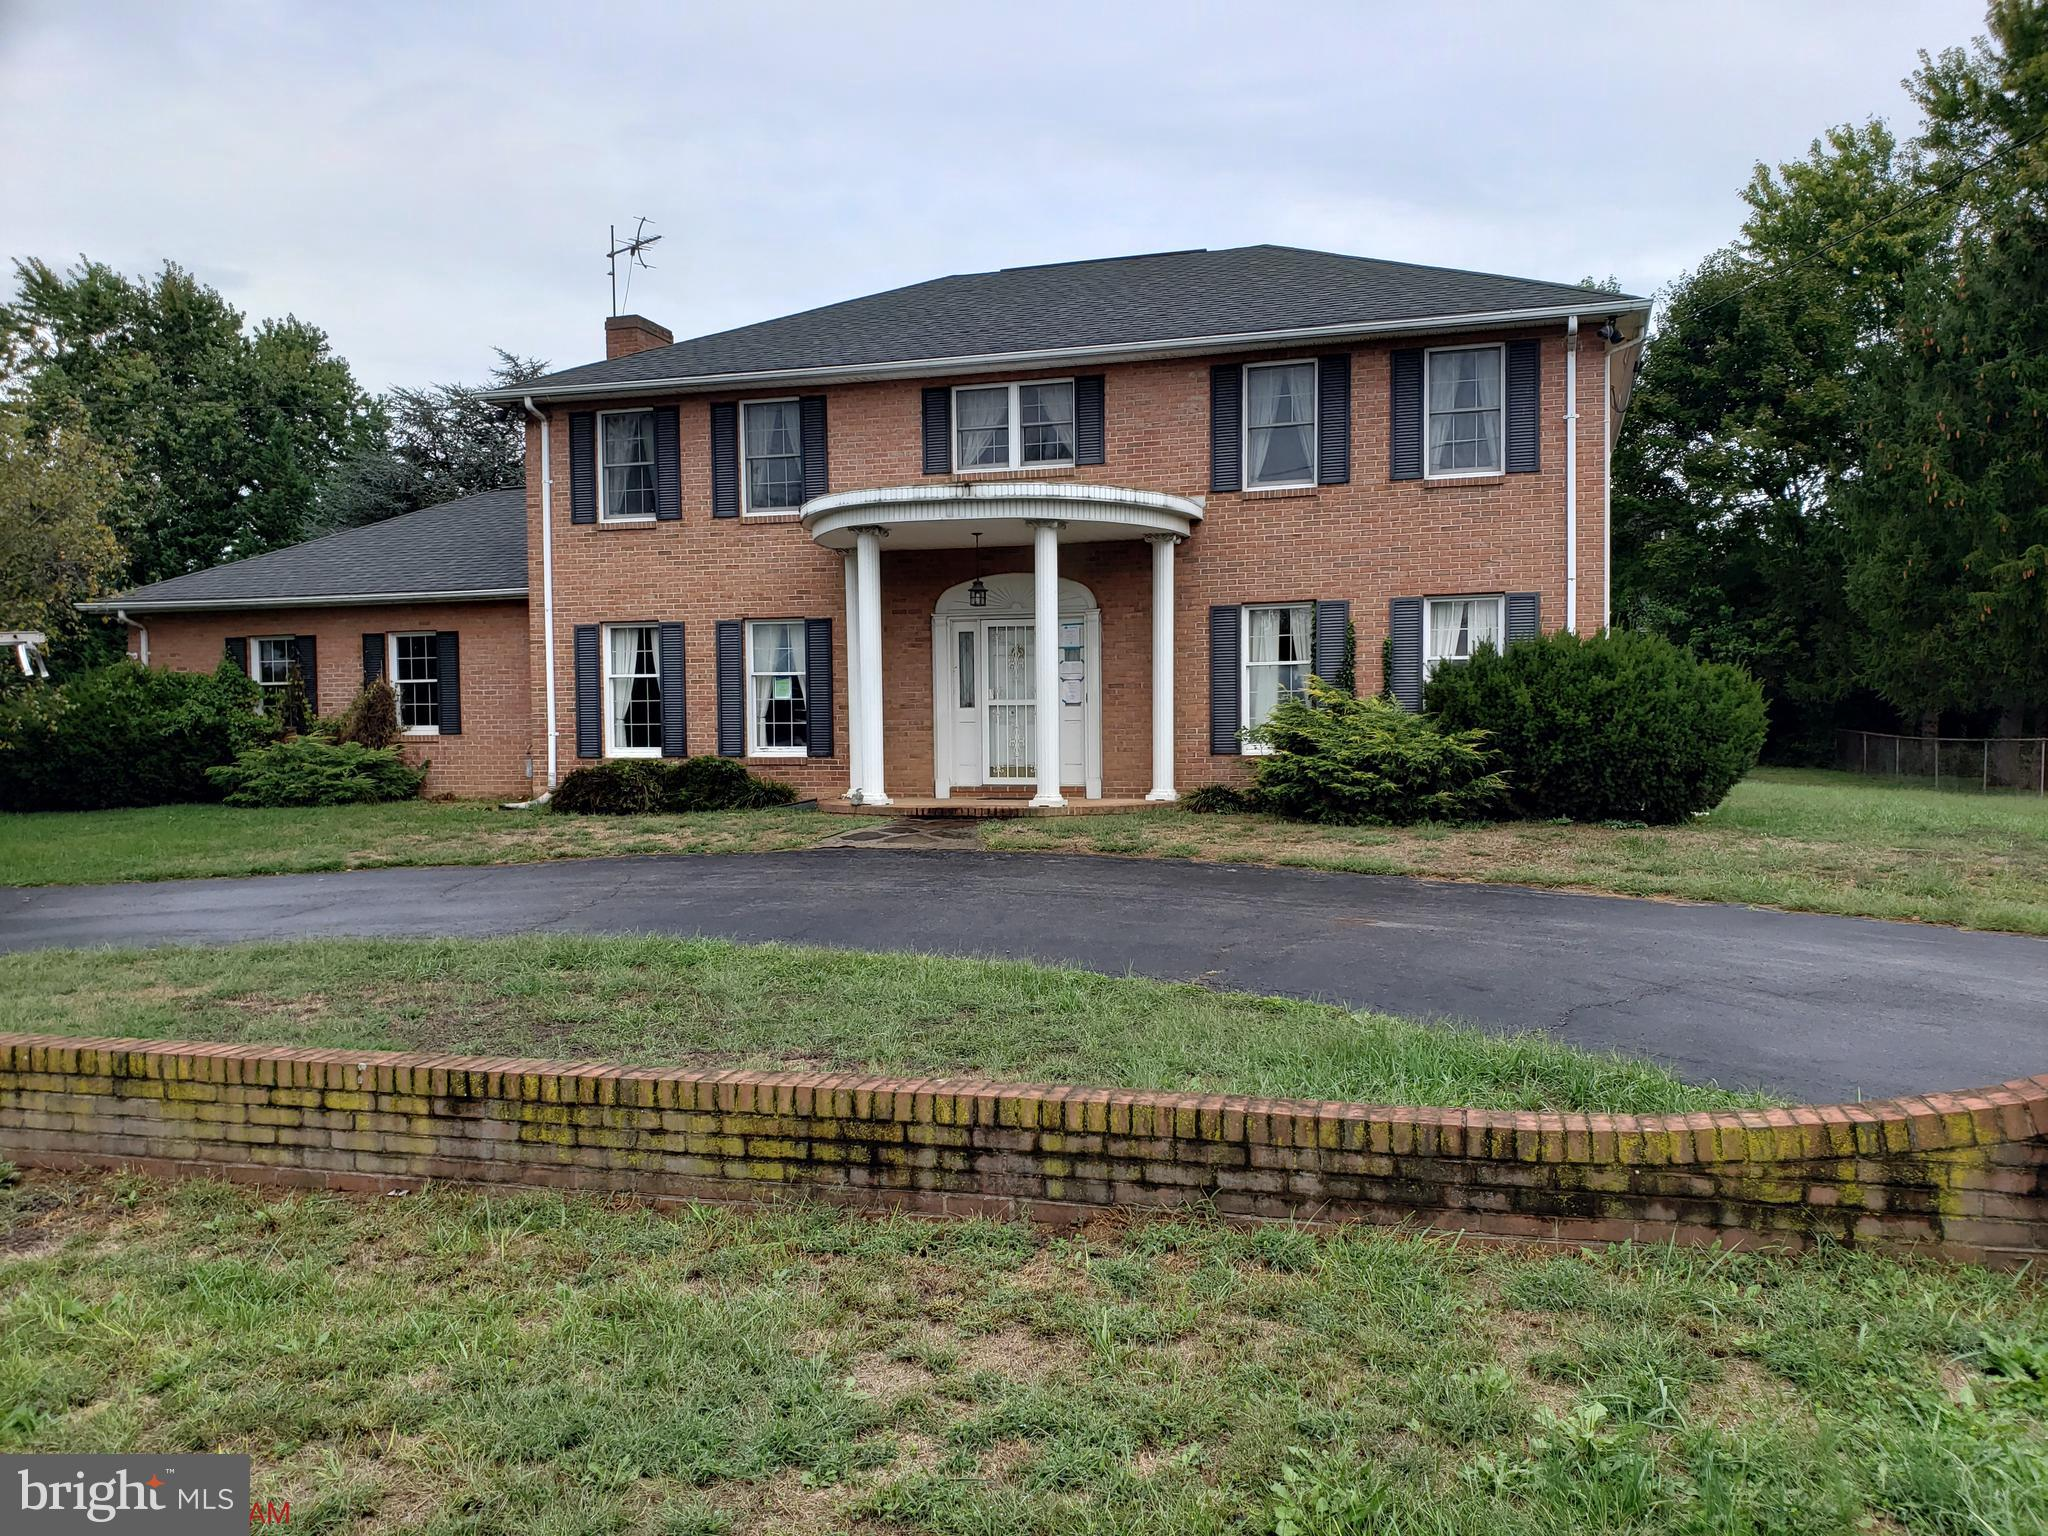 Well maintained and very well built colonial.  This home has 2 master suites with one being on the main level, six bedrooms total with 3.5 baths. Separate Living Room, Dining Room , and Family room w/ fireplace, there is a laundry closet on the main floor. The basement is partially finished for additional entertaining space. Nice above ground Pool. The 2 car garage and paved driveways provide plenty of space for parking.